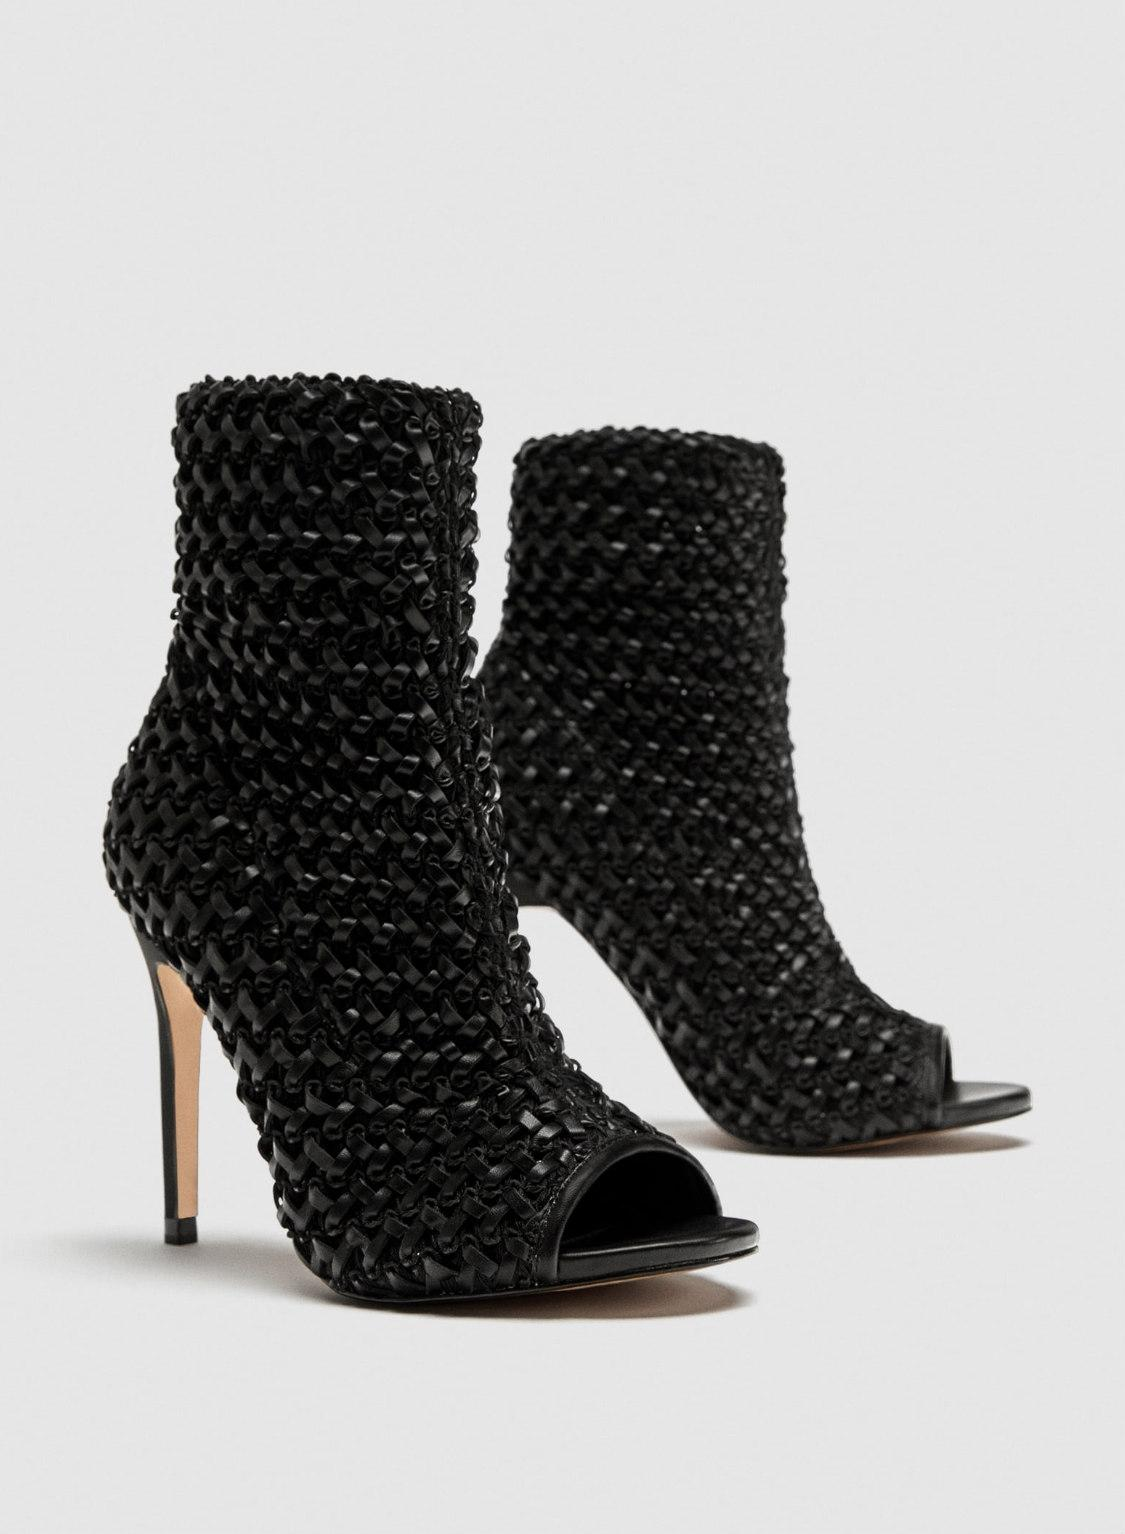 af8cfd589a93 ... Zara Black Braided Ankle Ankle Ankle Boot High Sandals Size US 5 Regular  (M